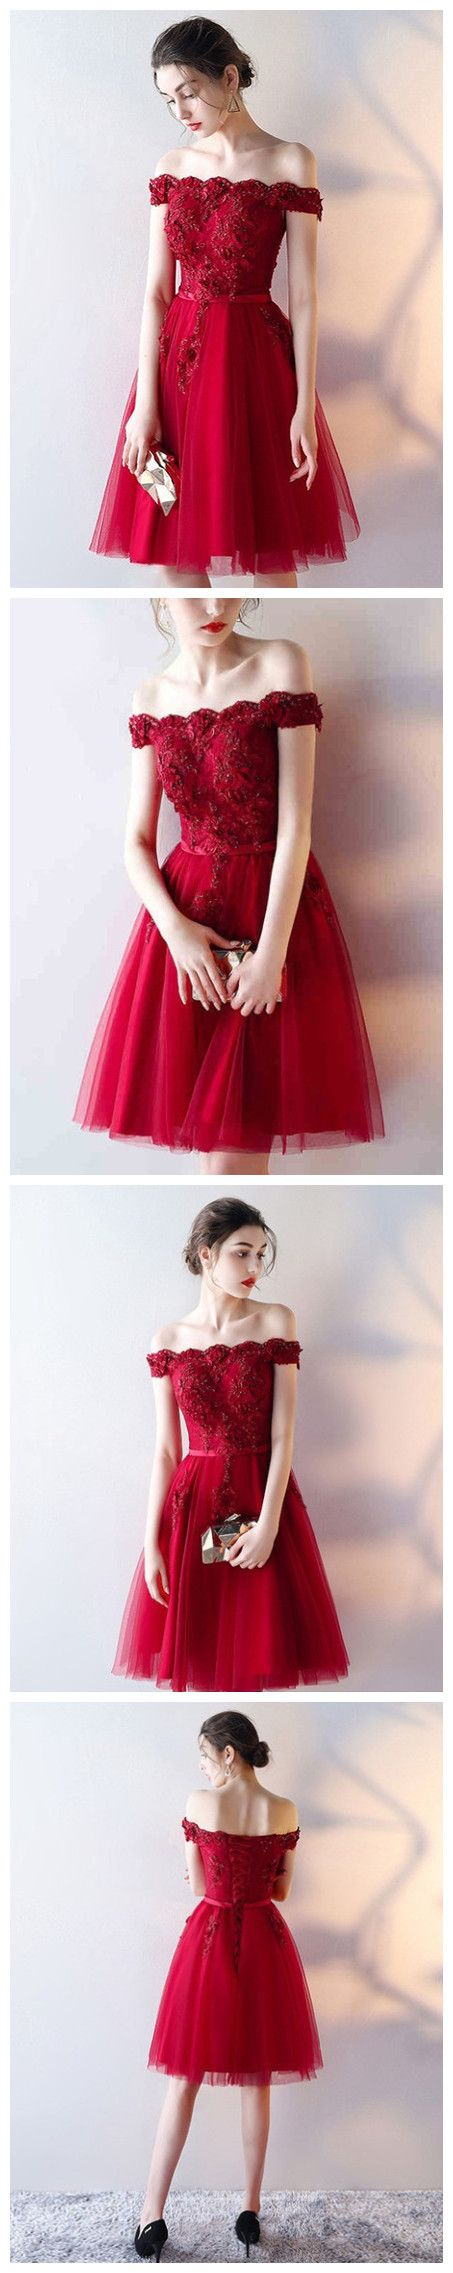 Charming A-line Off-the-shoulder Red Short Prom Dress Homecoming Dresses With Lace SKY990